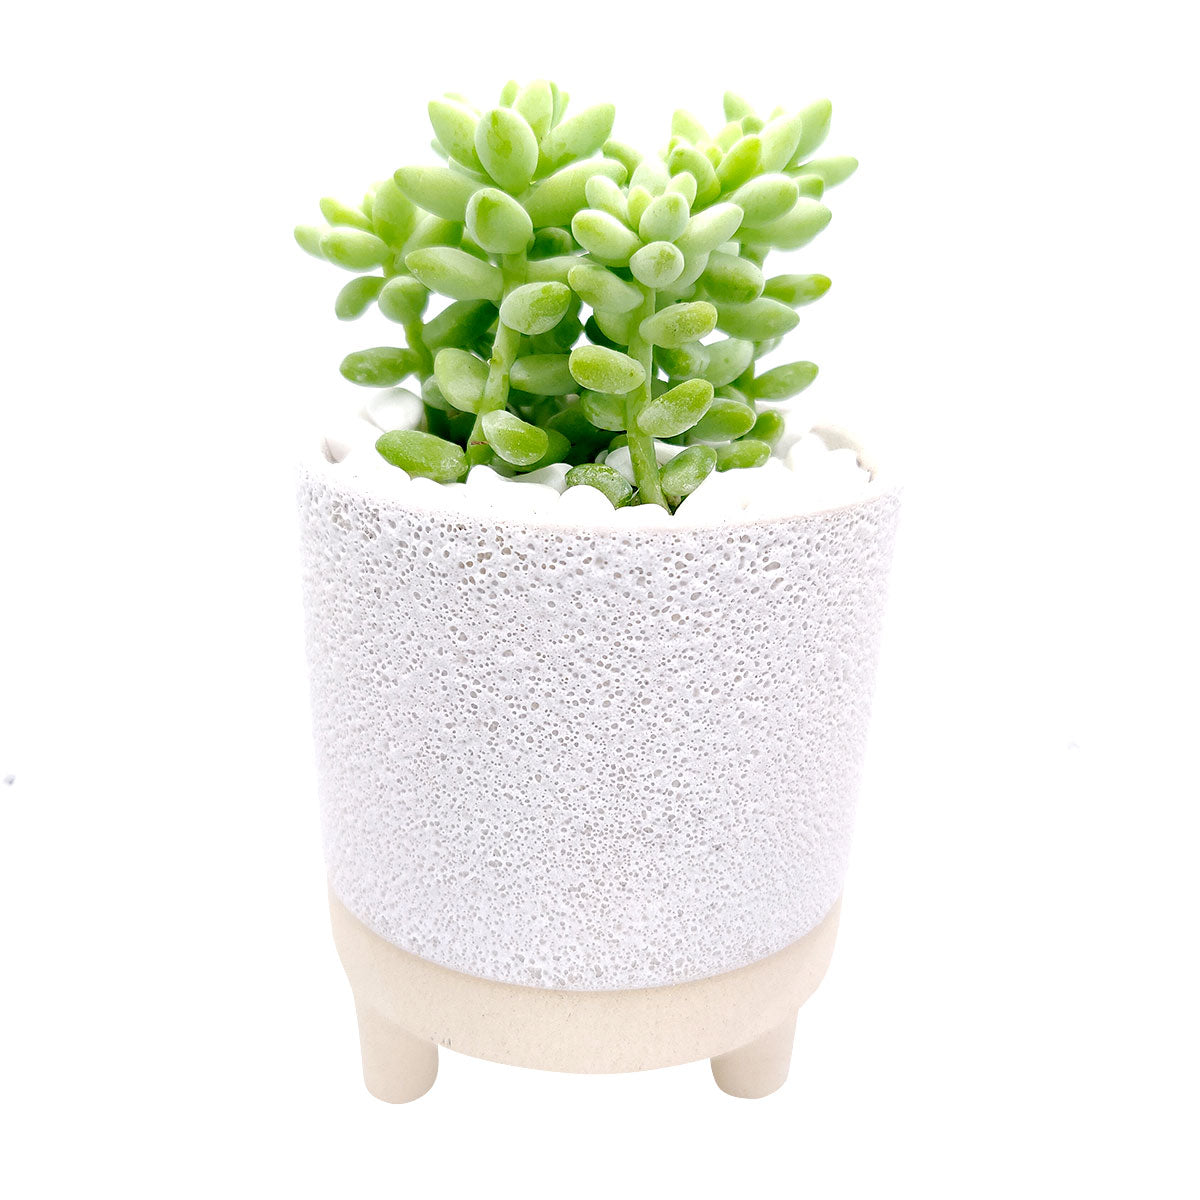 4 inch Bubbled Ceramic Footed Pot for sale, Designed Ceramic pot for succulent and cactus, small flower pot, Succulent pot decor ideas, succulent gift ideas